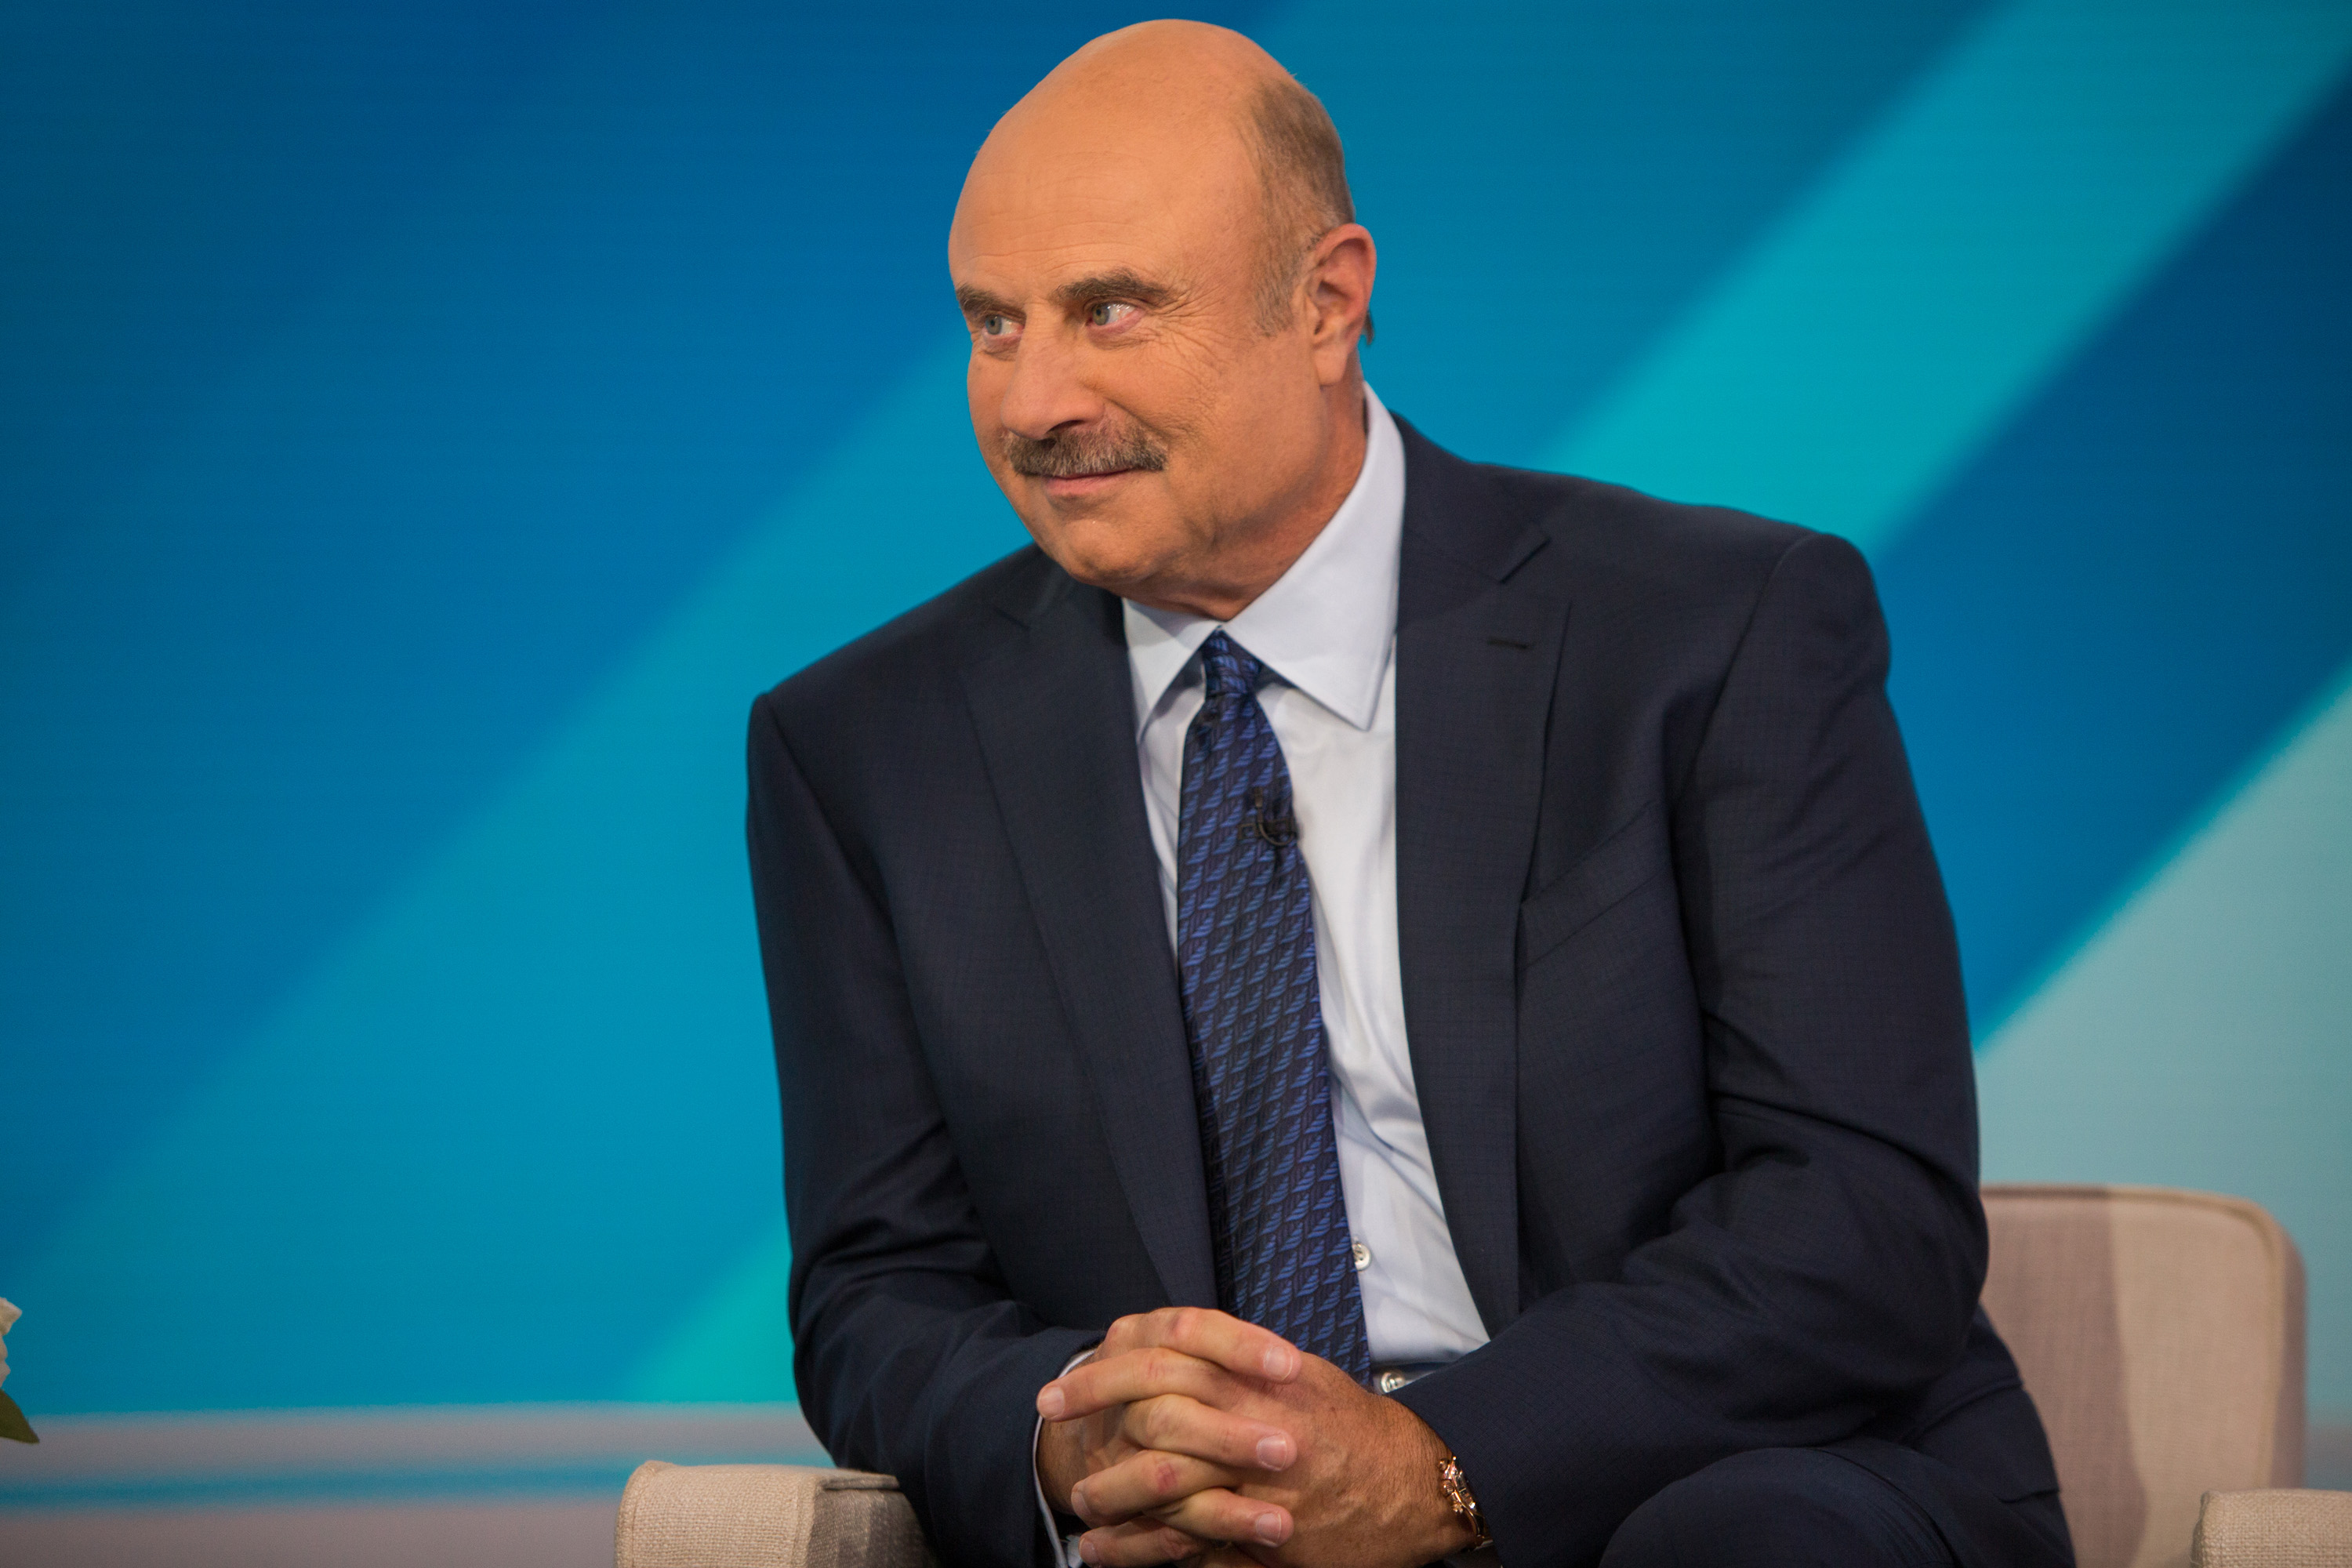 Erin Caffey Dr Phil : They are going to destroy him and the show, the production assistant said.